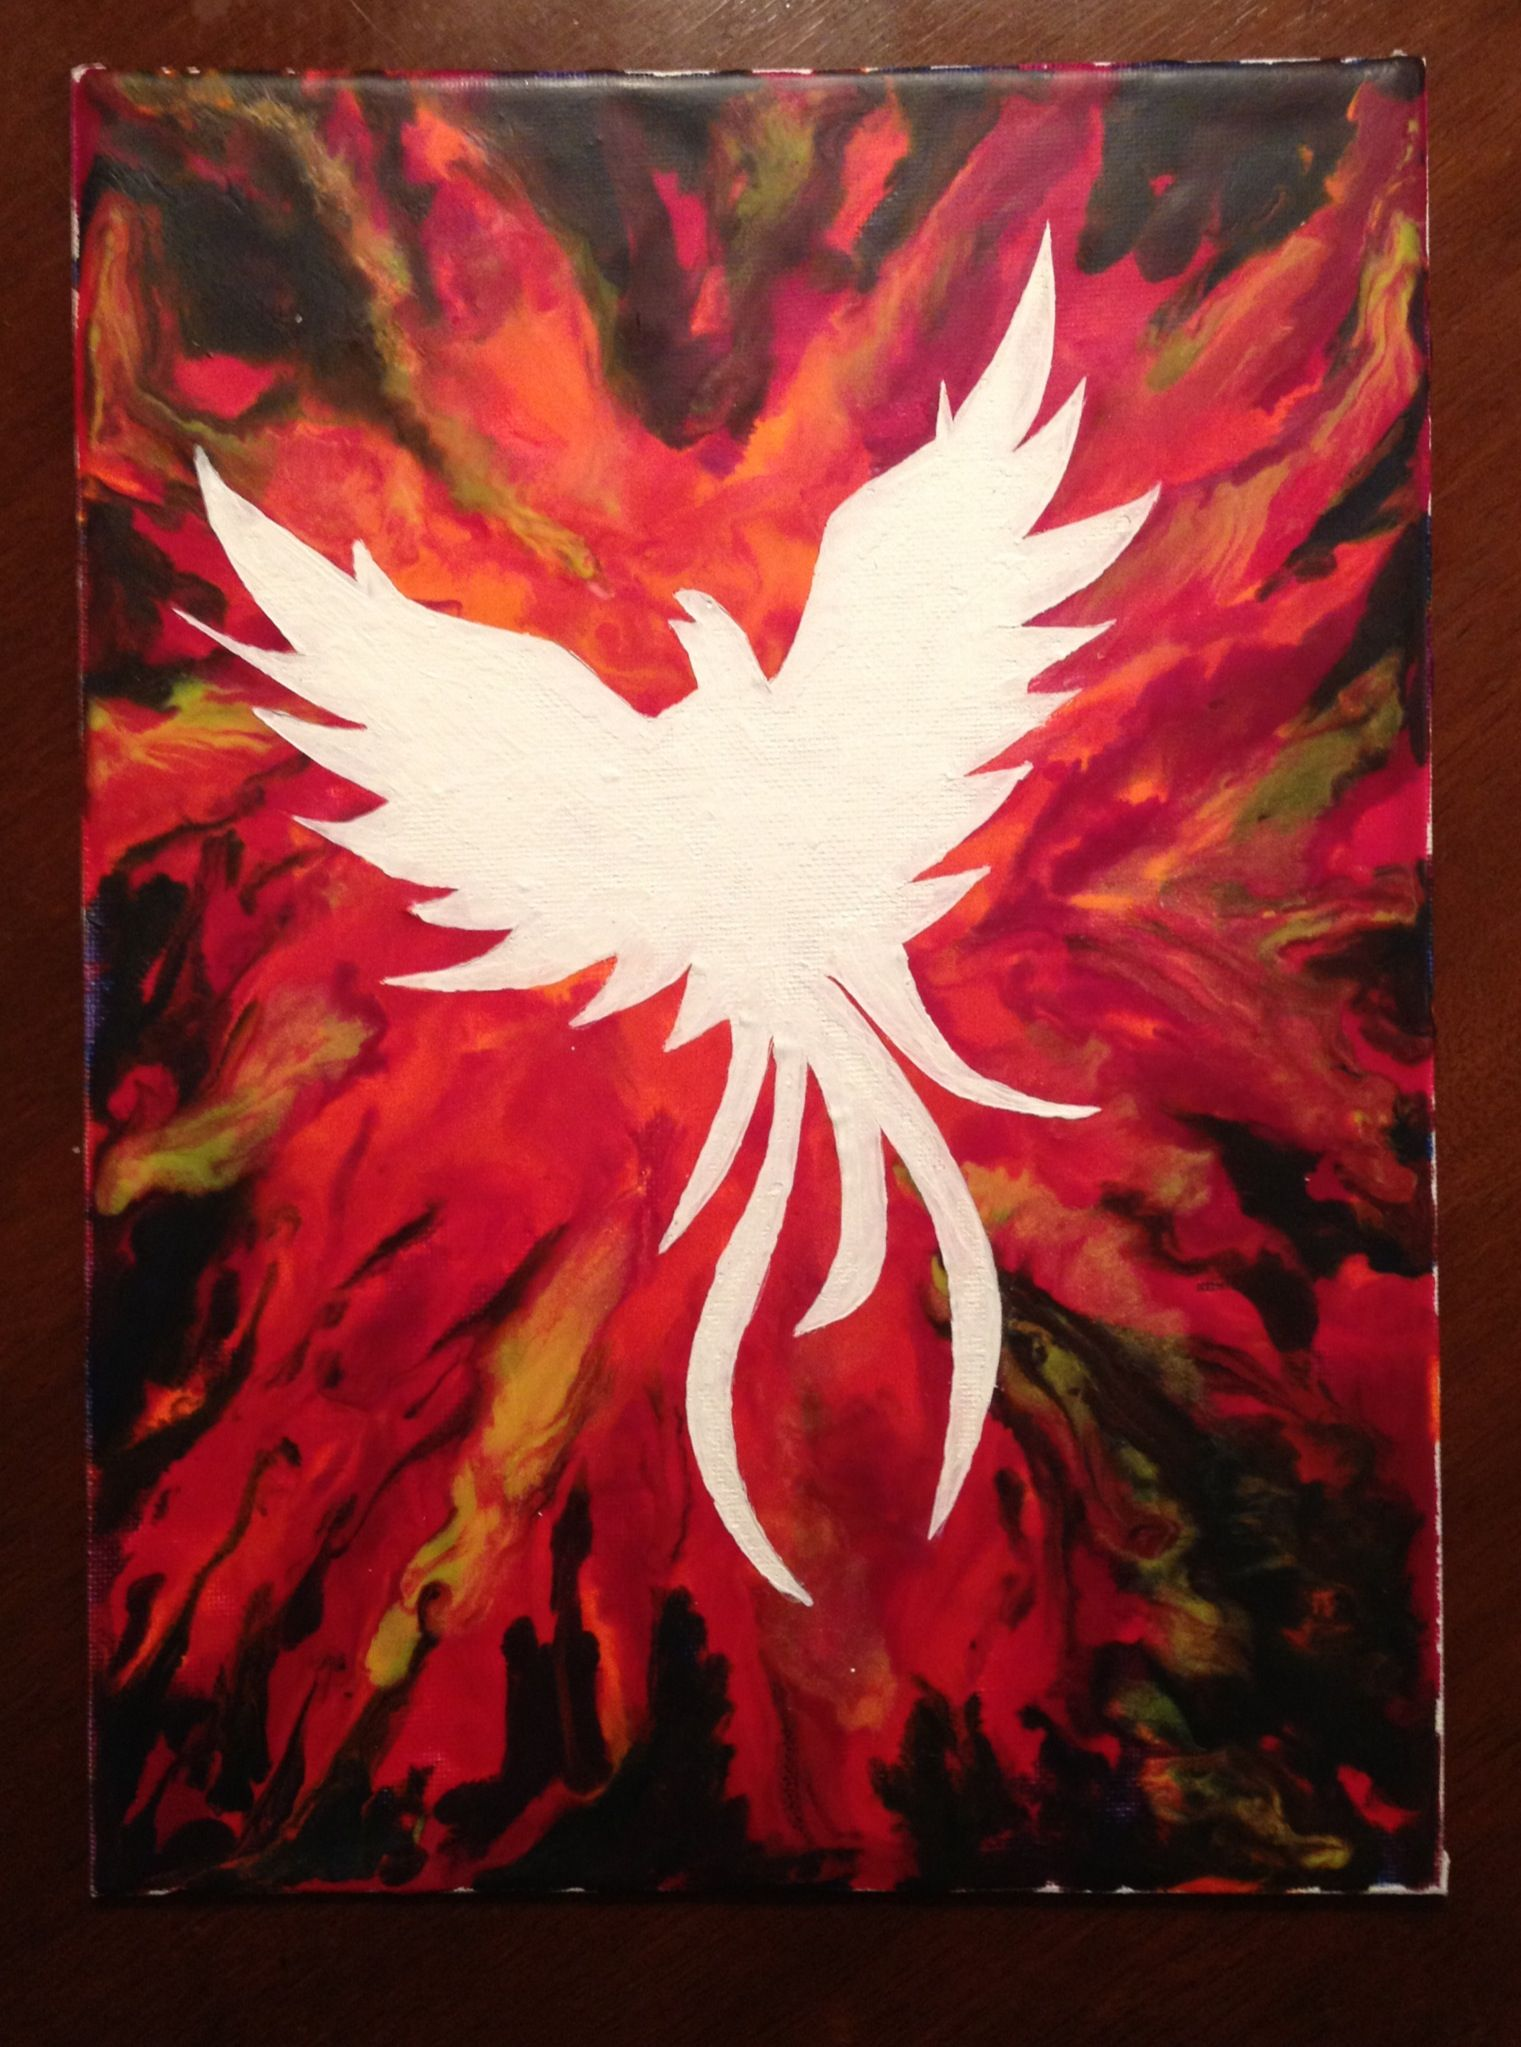 Phoenix Melted Crayon Art Wax Art Crayon Art